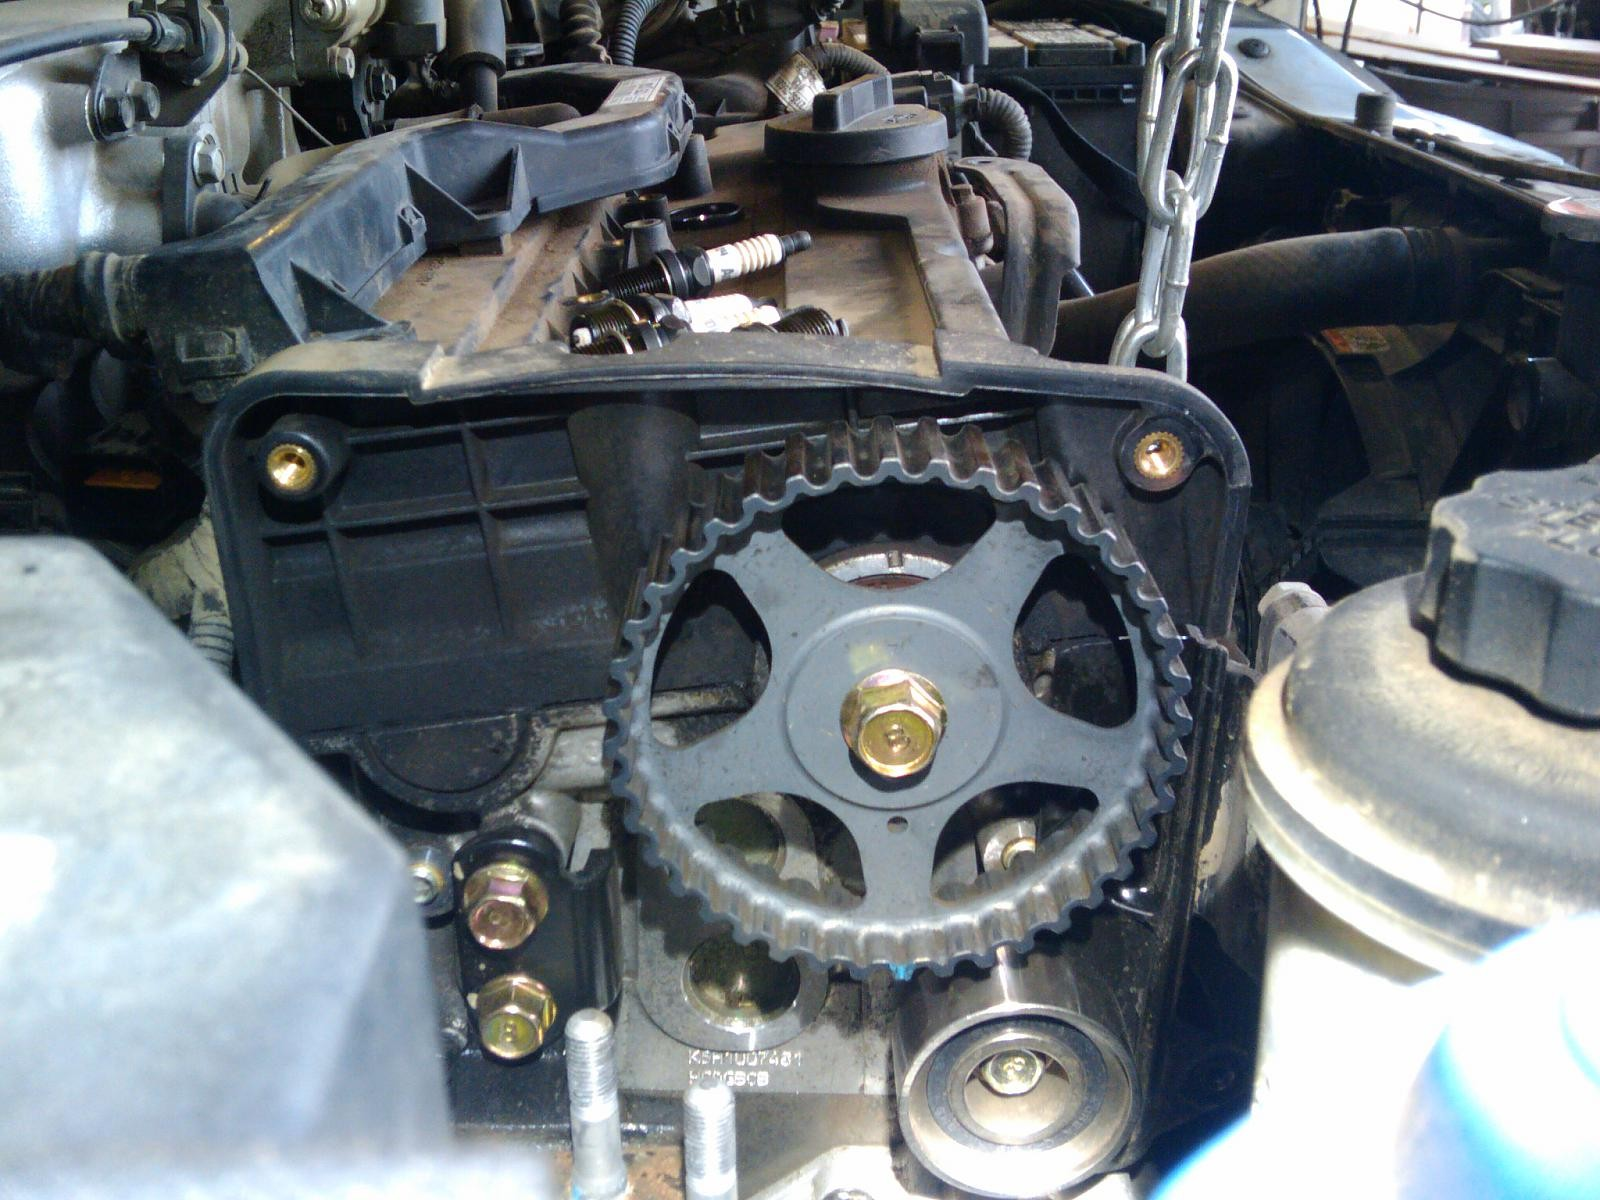 2005 kia rio engine diagram 2000 mitsubishi eclipse gt stereo wiring 2001 timing belt replacement